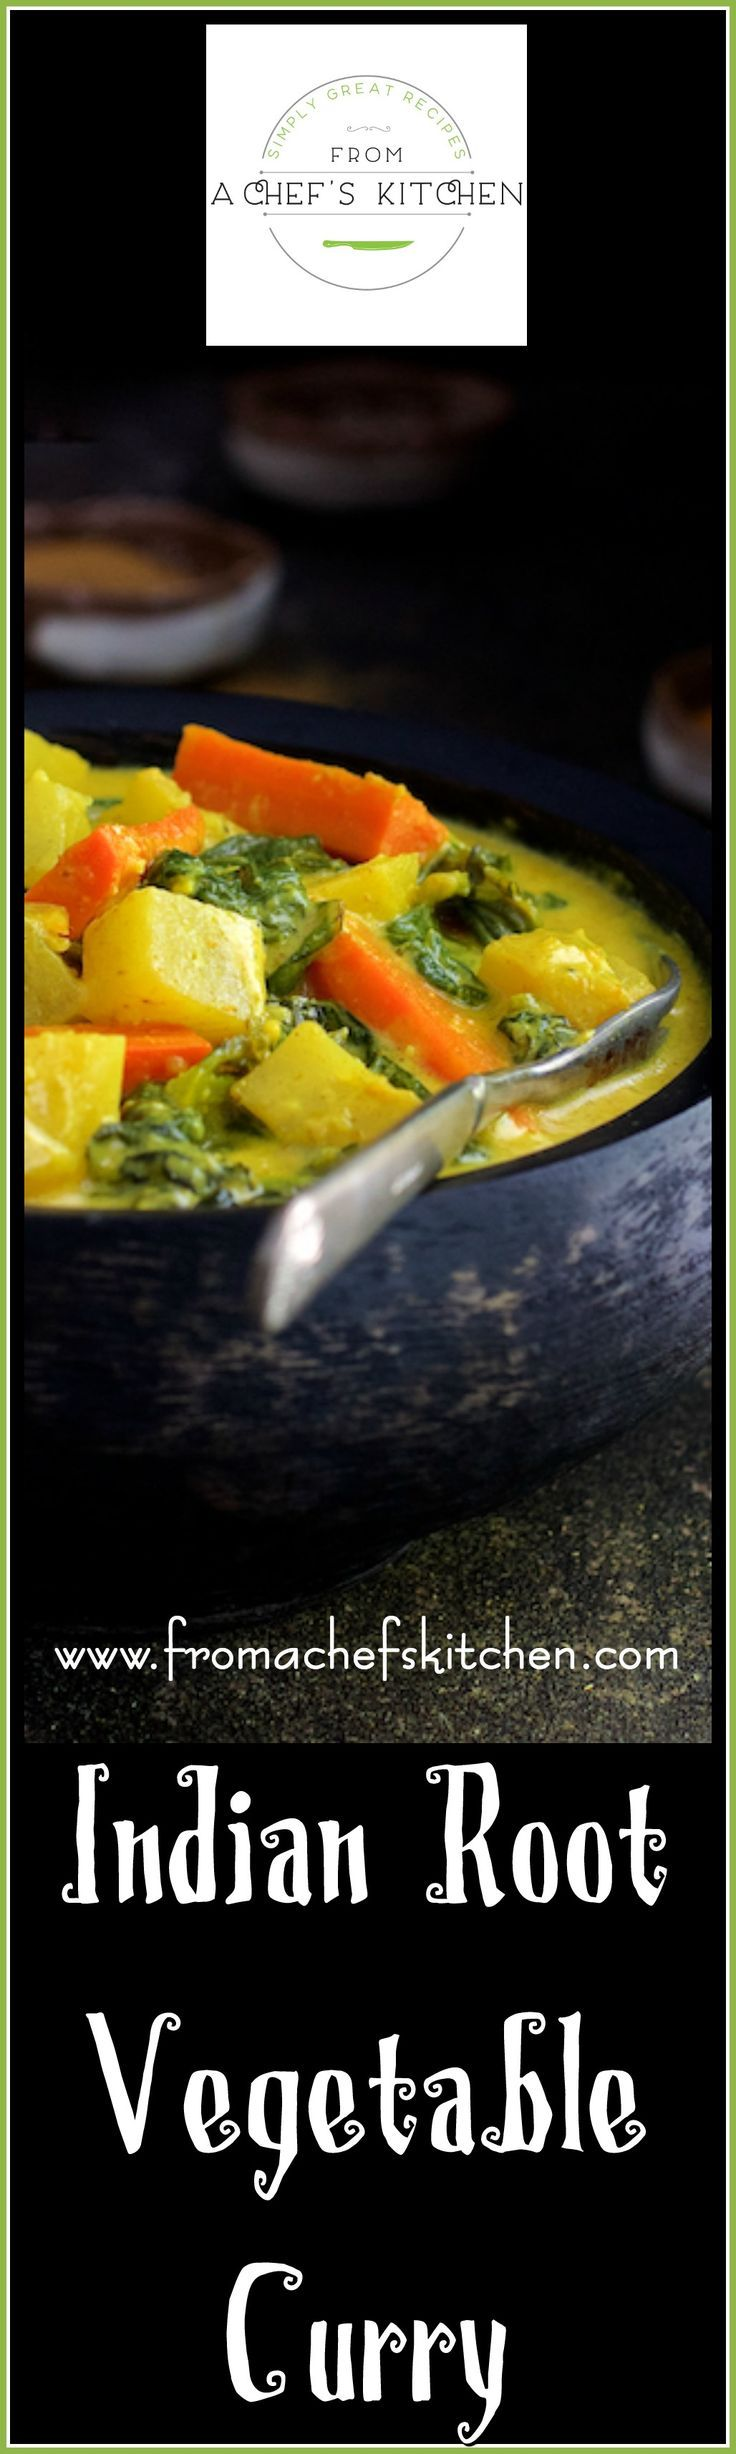 Indian Root Vegetable Curry is hearty and humble but over-the-top with flavor! It is the perfect down-to-earth dinner when life is crazy!